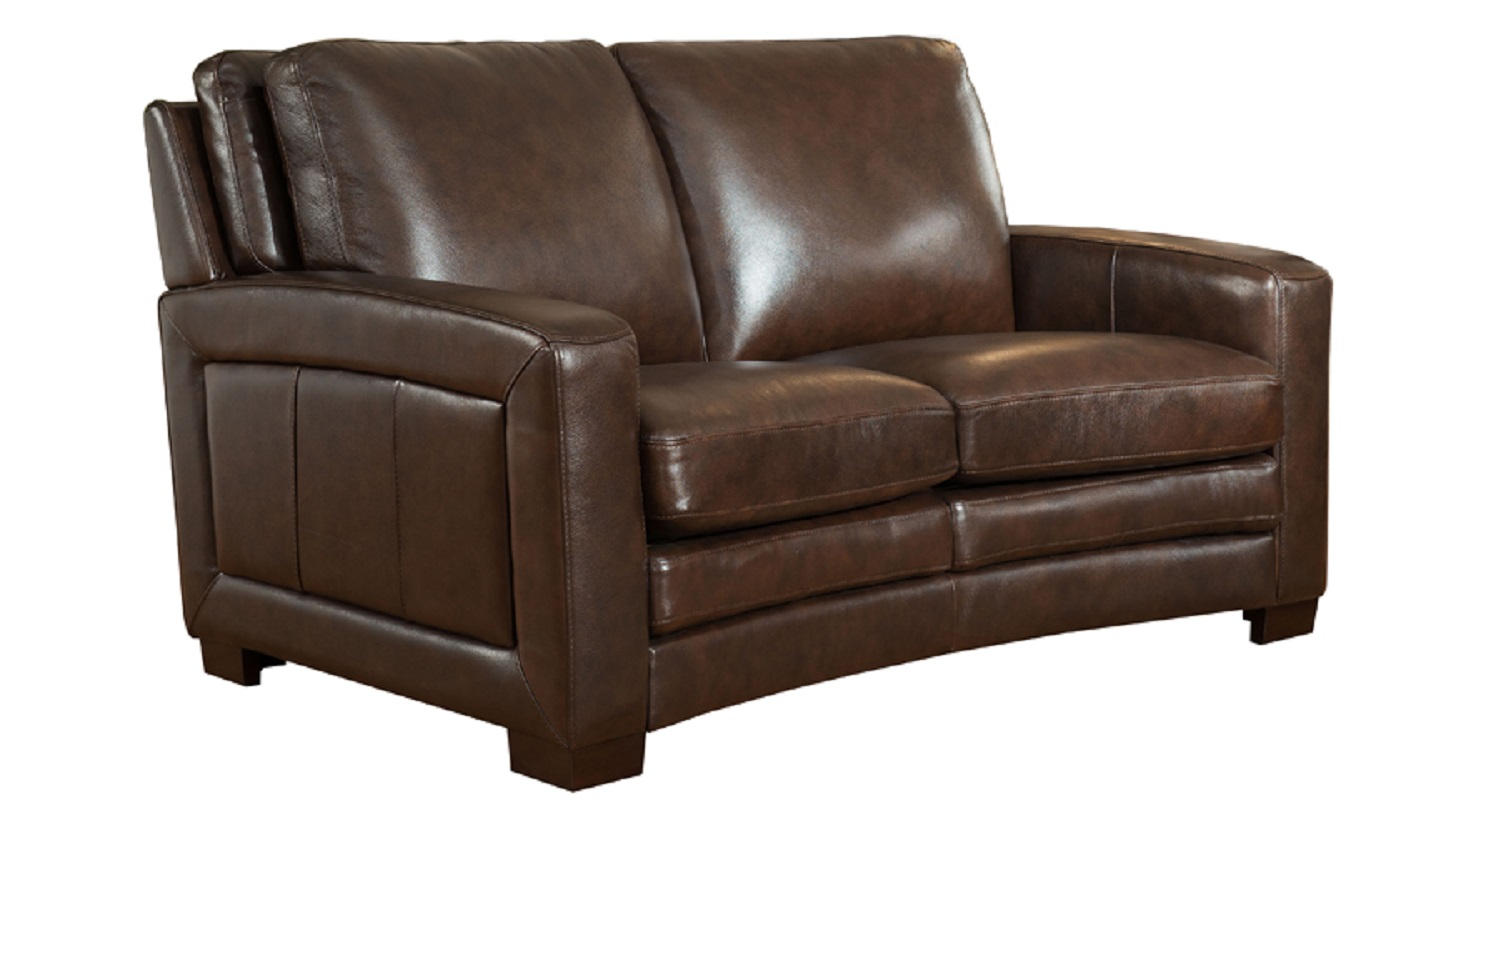 Groovy Jane Furniture Joanna Top Grain Dark Brown Leather Loveseat Gmtry Best Dining Table And Chair Ideas Images Gmtryco